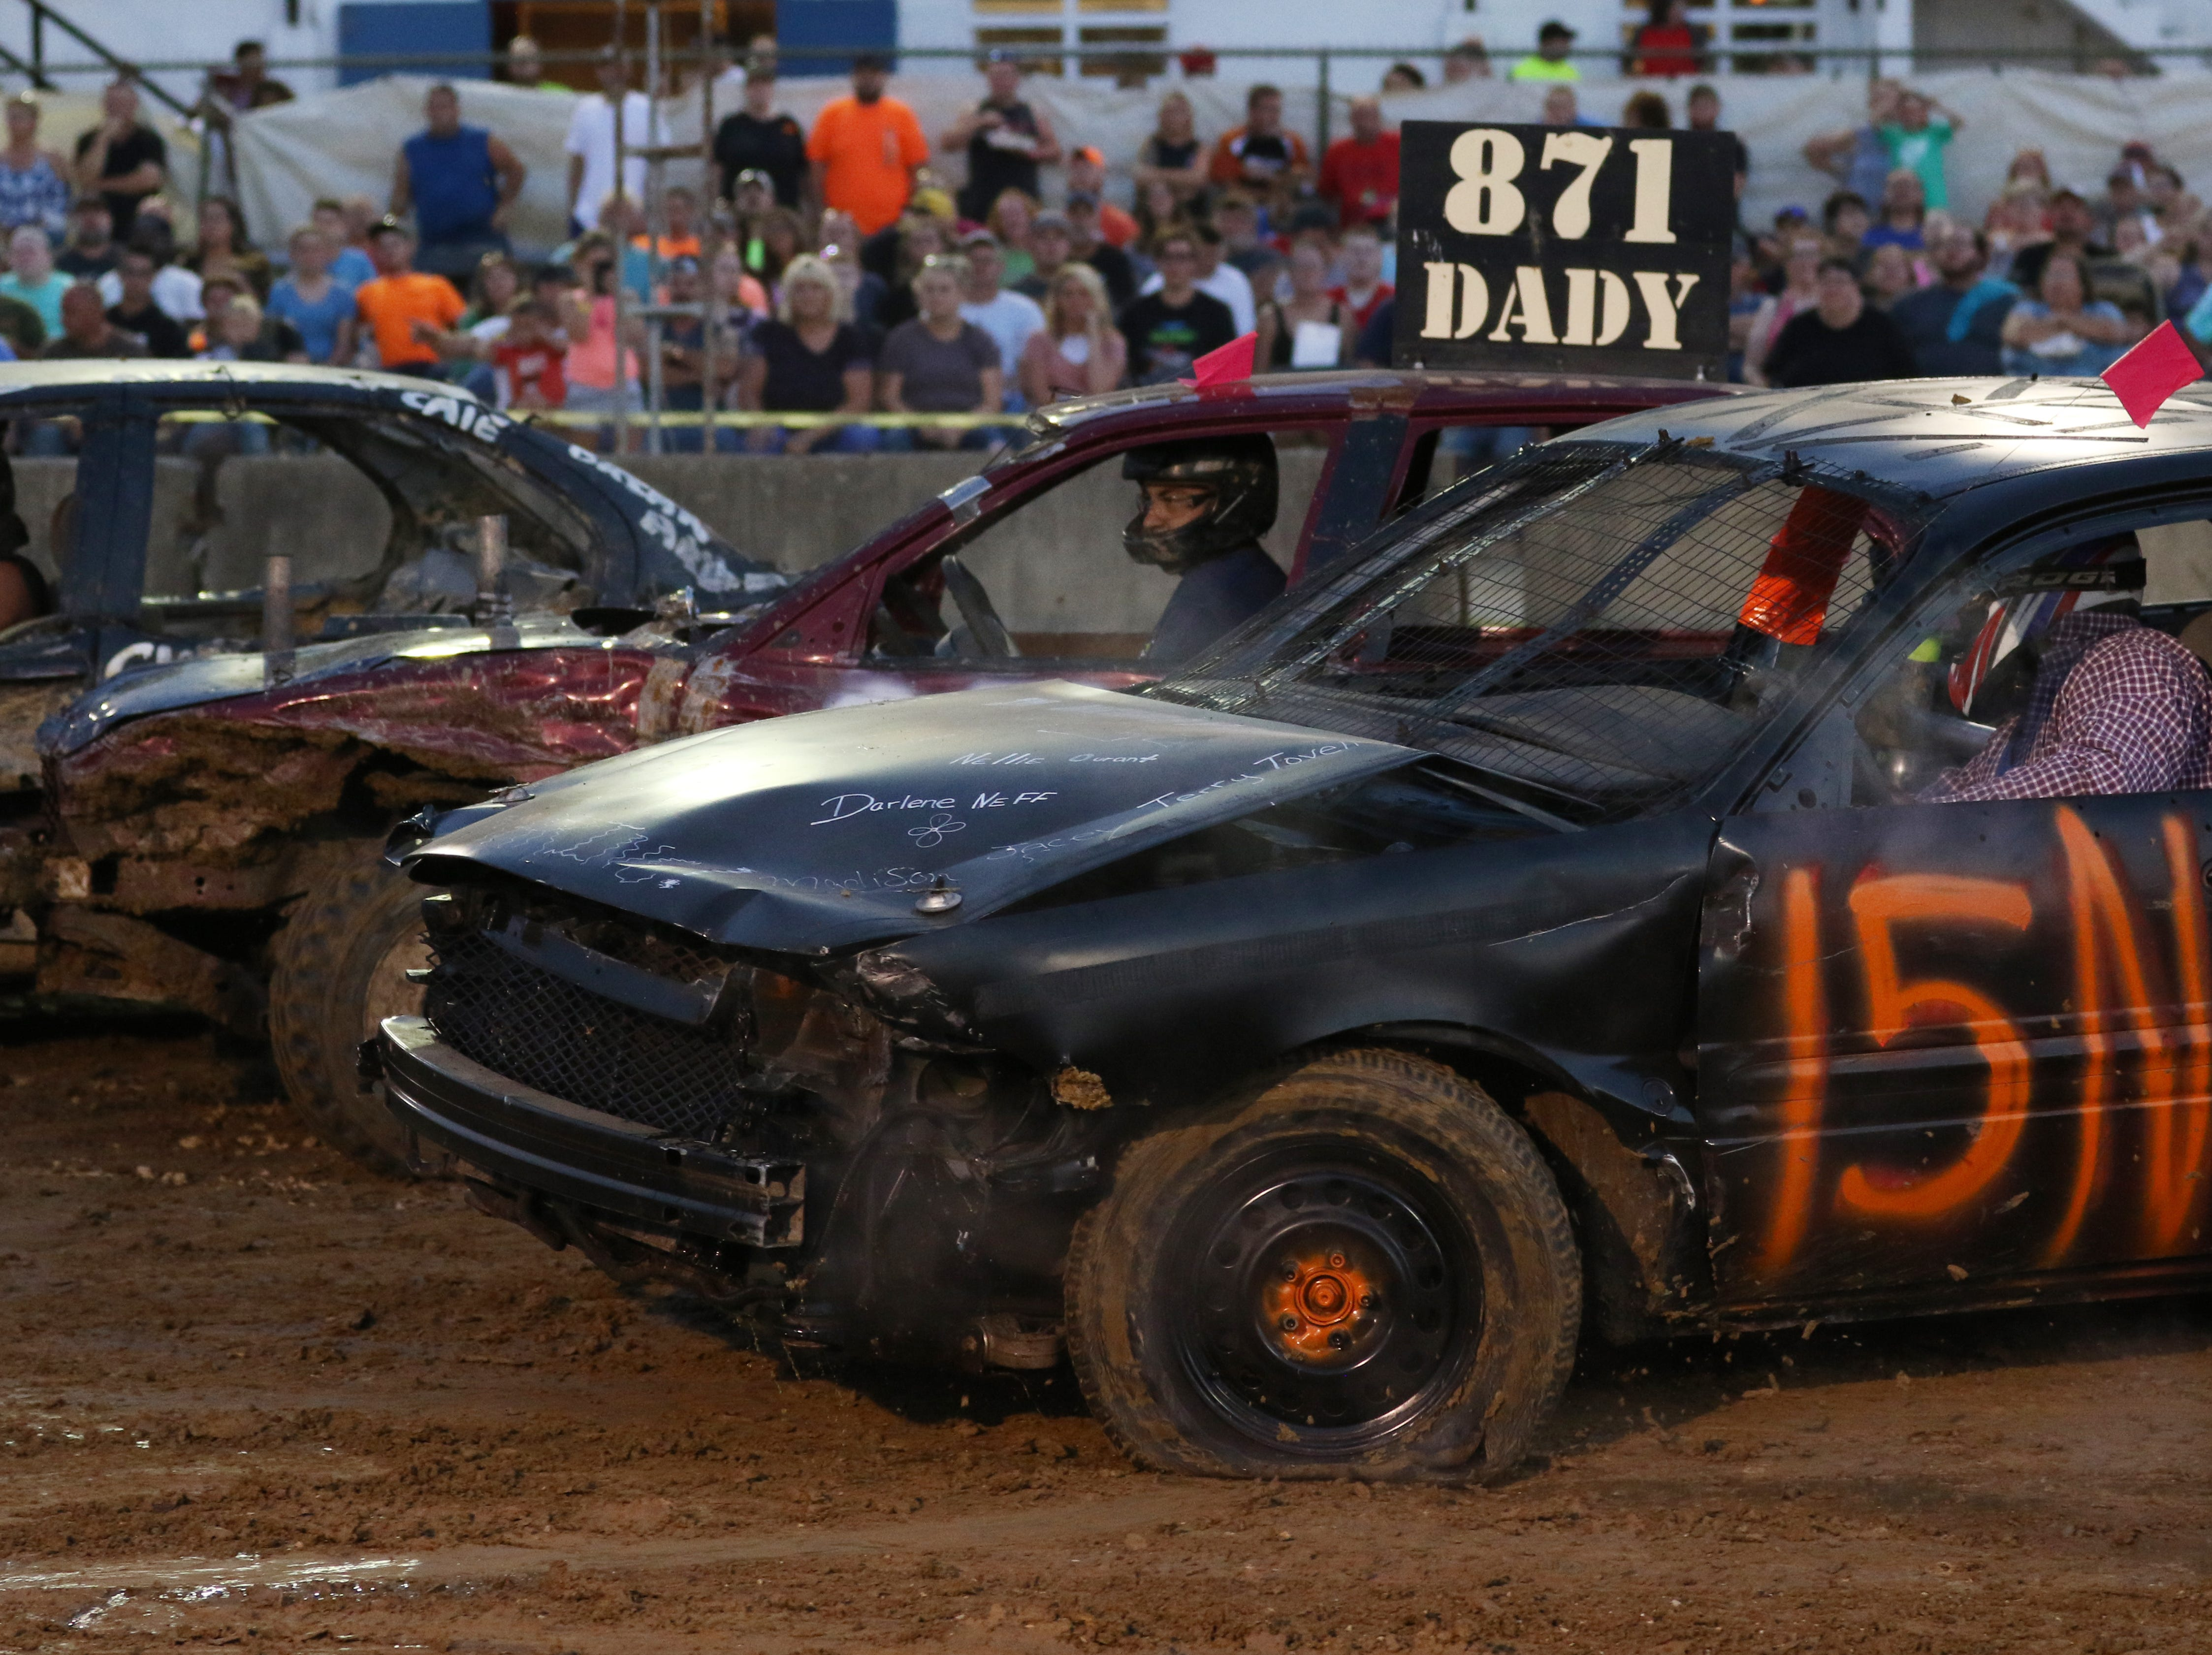 Sam Neff in the 15n car looks for someone to hit during the Sarge and Sons Demolition Derby at the Muskingum County Fair on Tuesday.